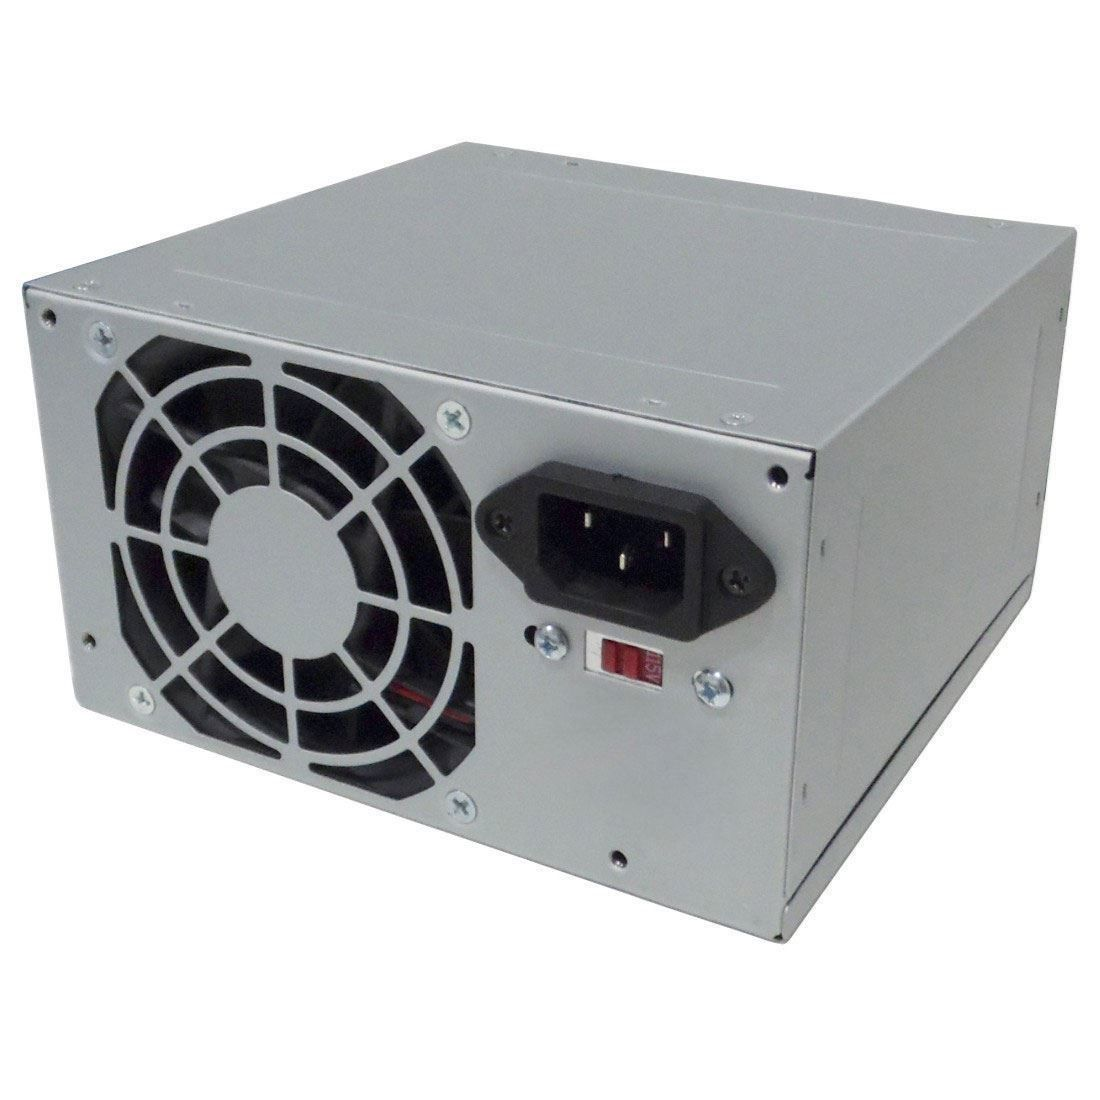 Fonte Atx 300w Real 20 Pinos Ever-power PX-300 - Usada